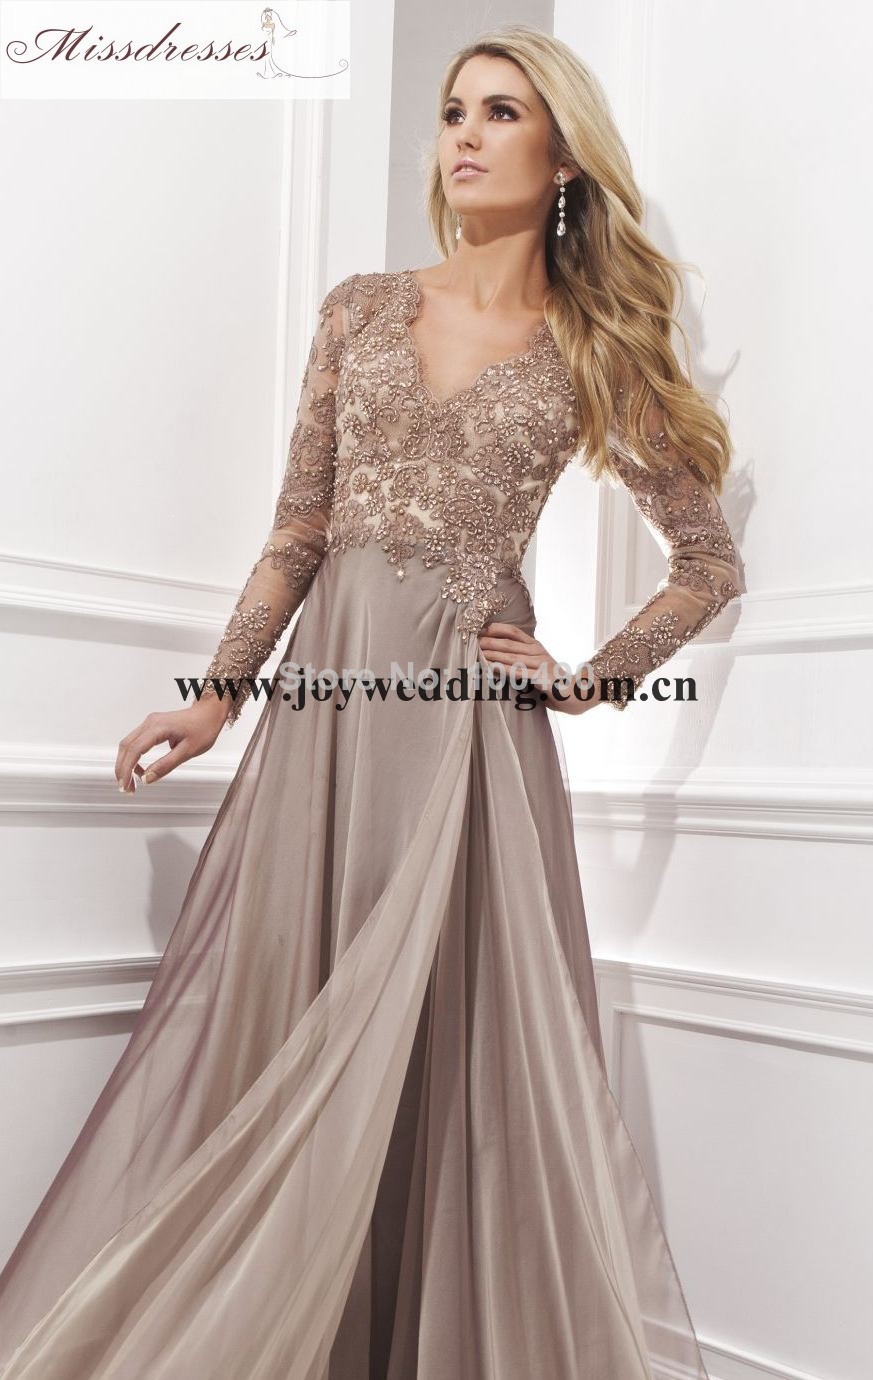 Evening dresses with full sleeves maxi